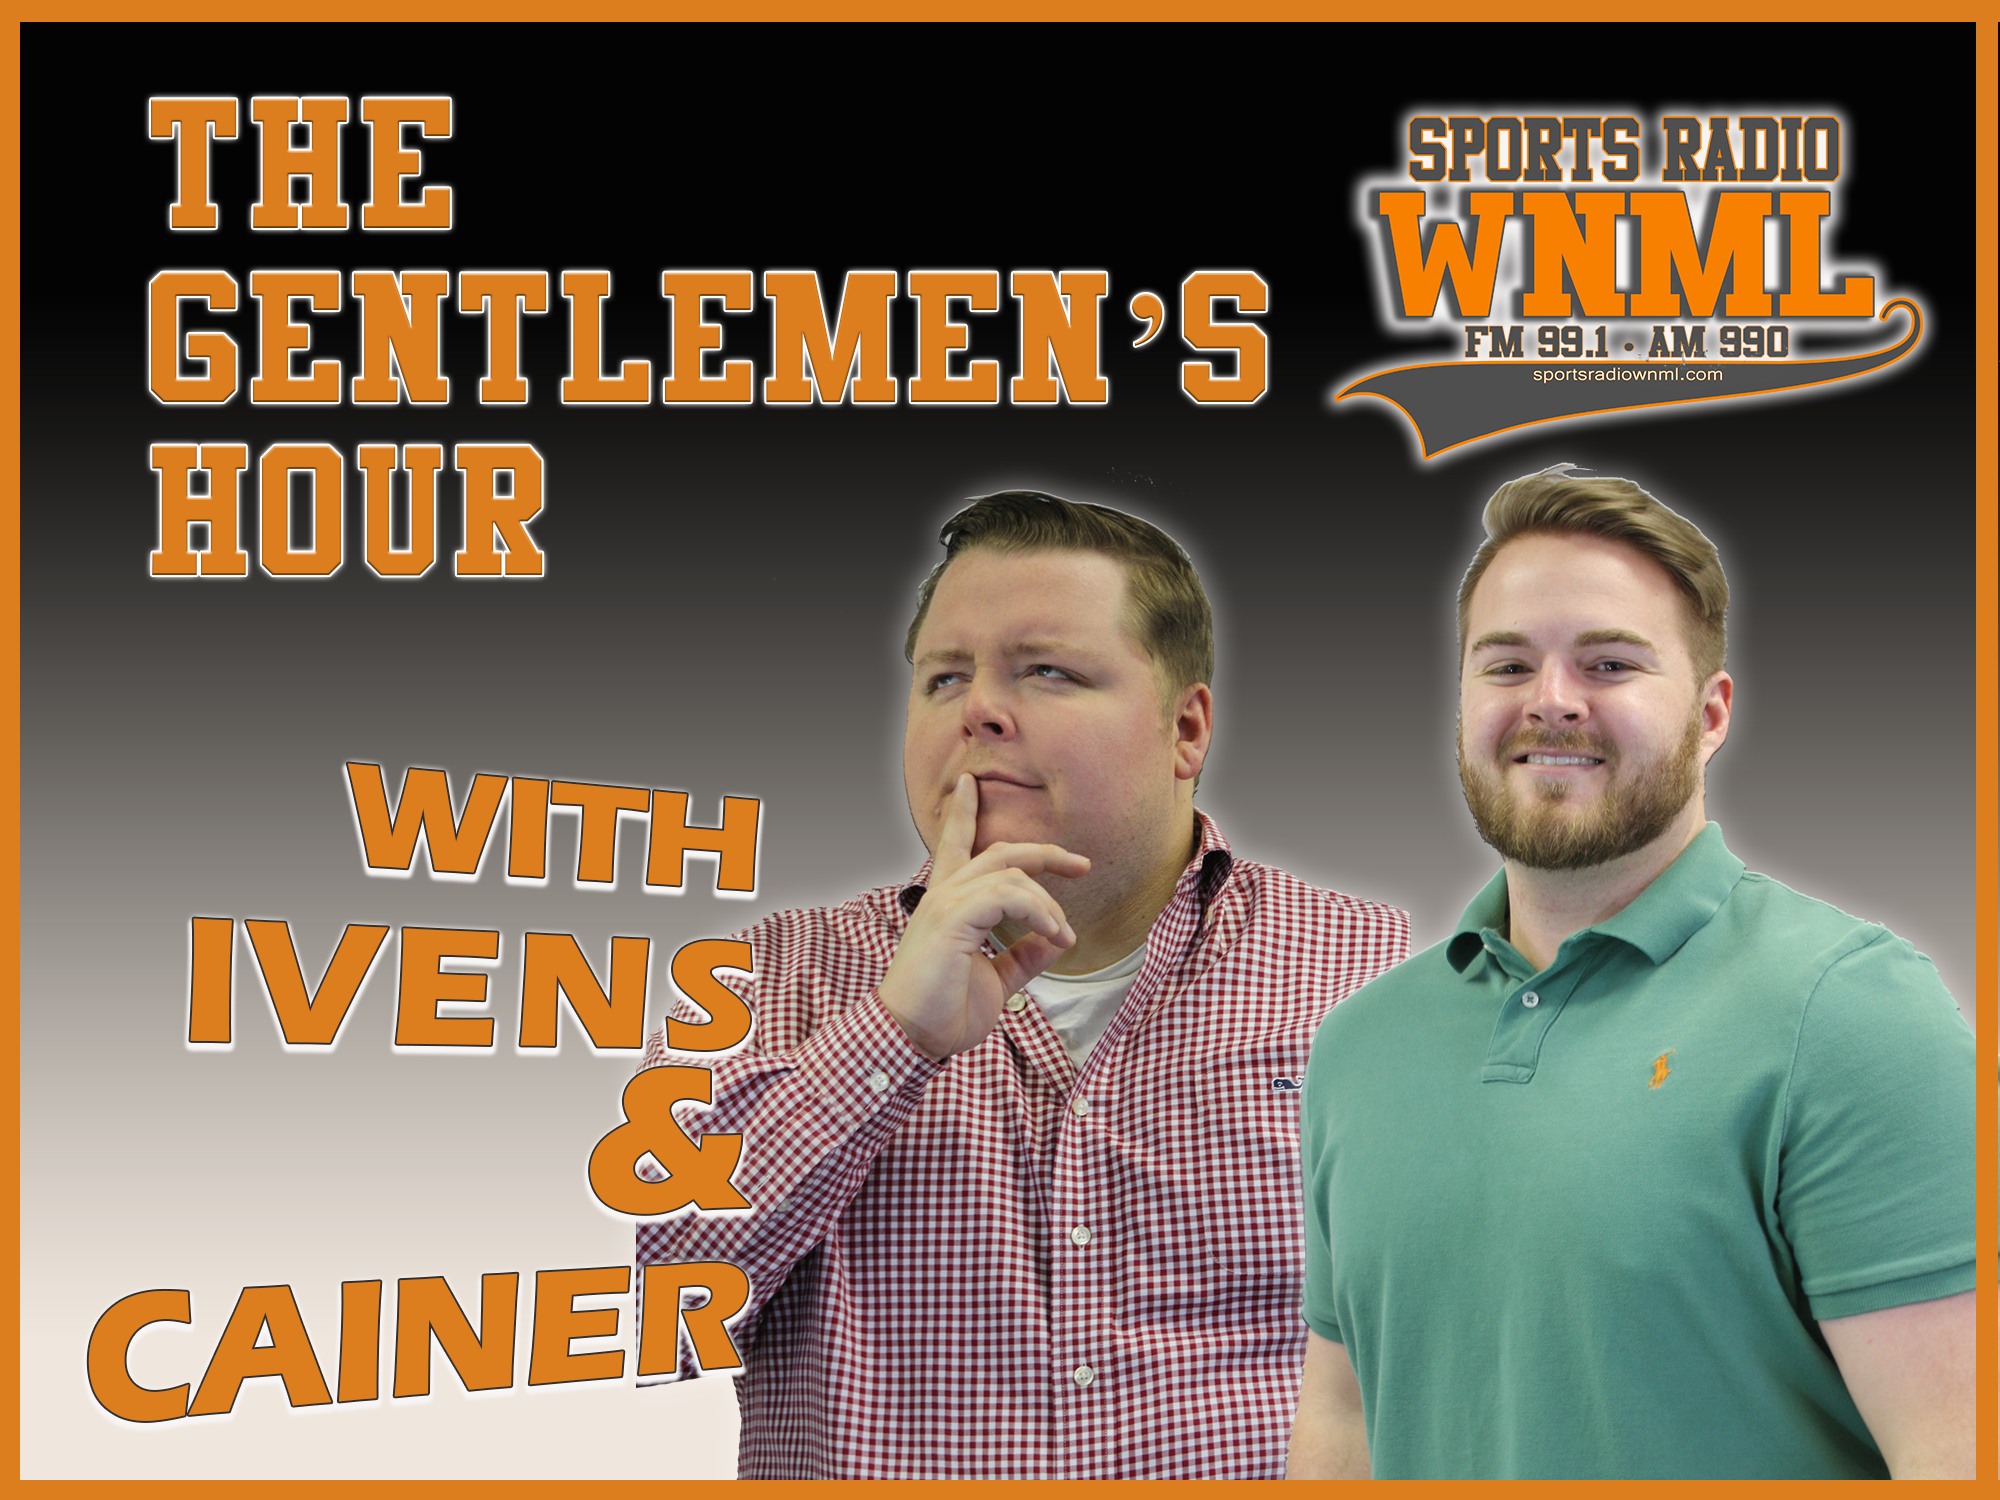 The Gentlemen's Hour Podcast: Episode 33 (6.5.19)